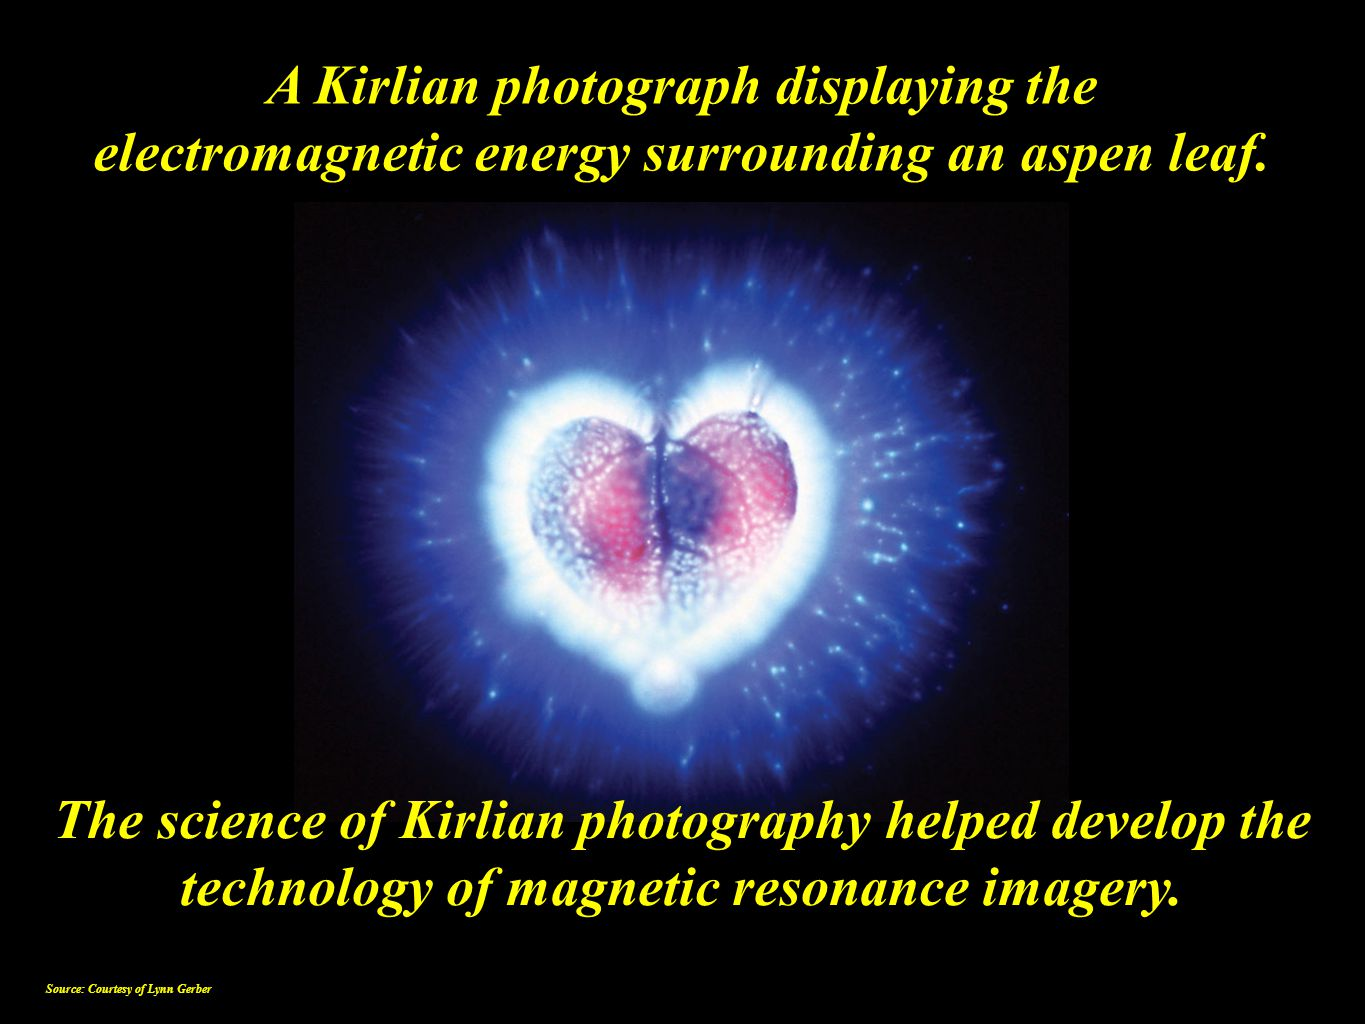 A Kirlian photograph displaying the electromagnetic energy surrounding an aspen leaf. The science of Kirlian photography helped develop the technology